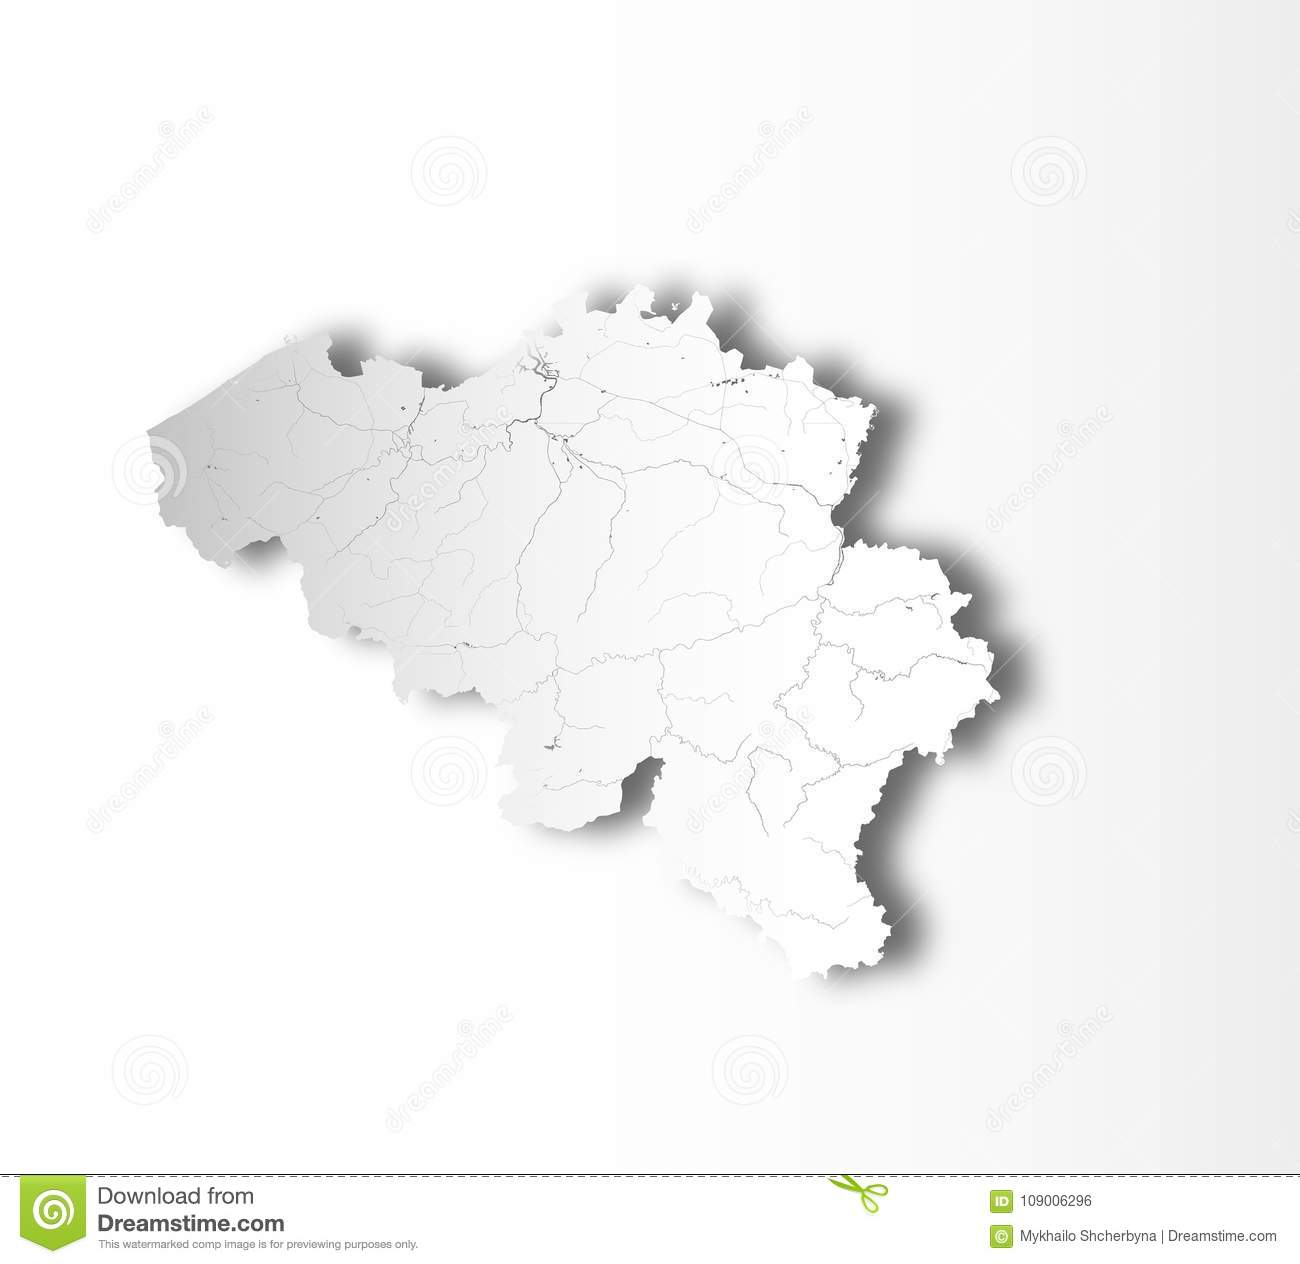 Map Of Belgium With Lakes And Rivers Stock Vector Illustration Of Boundary Sign 109006296